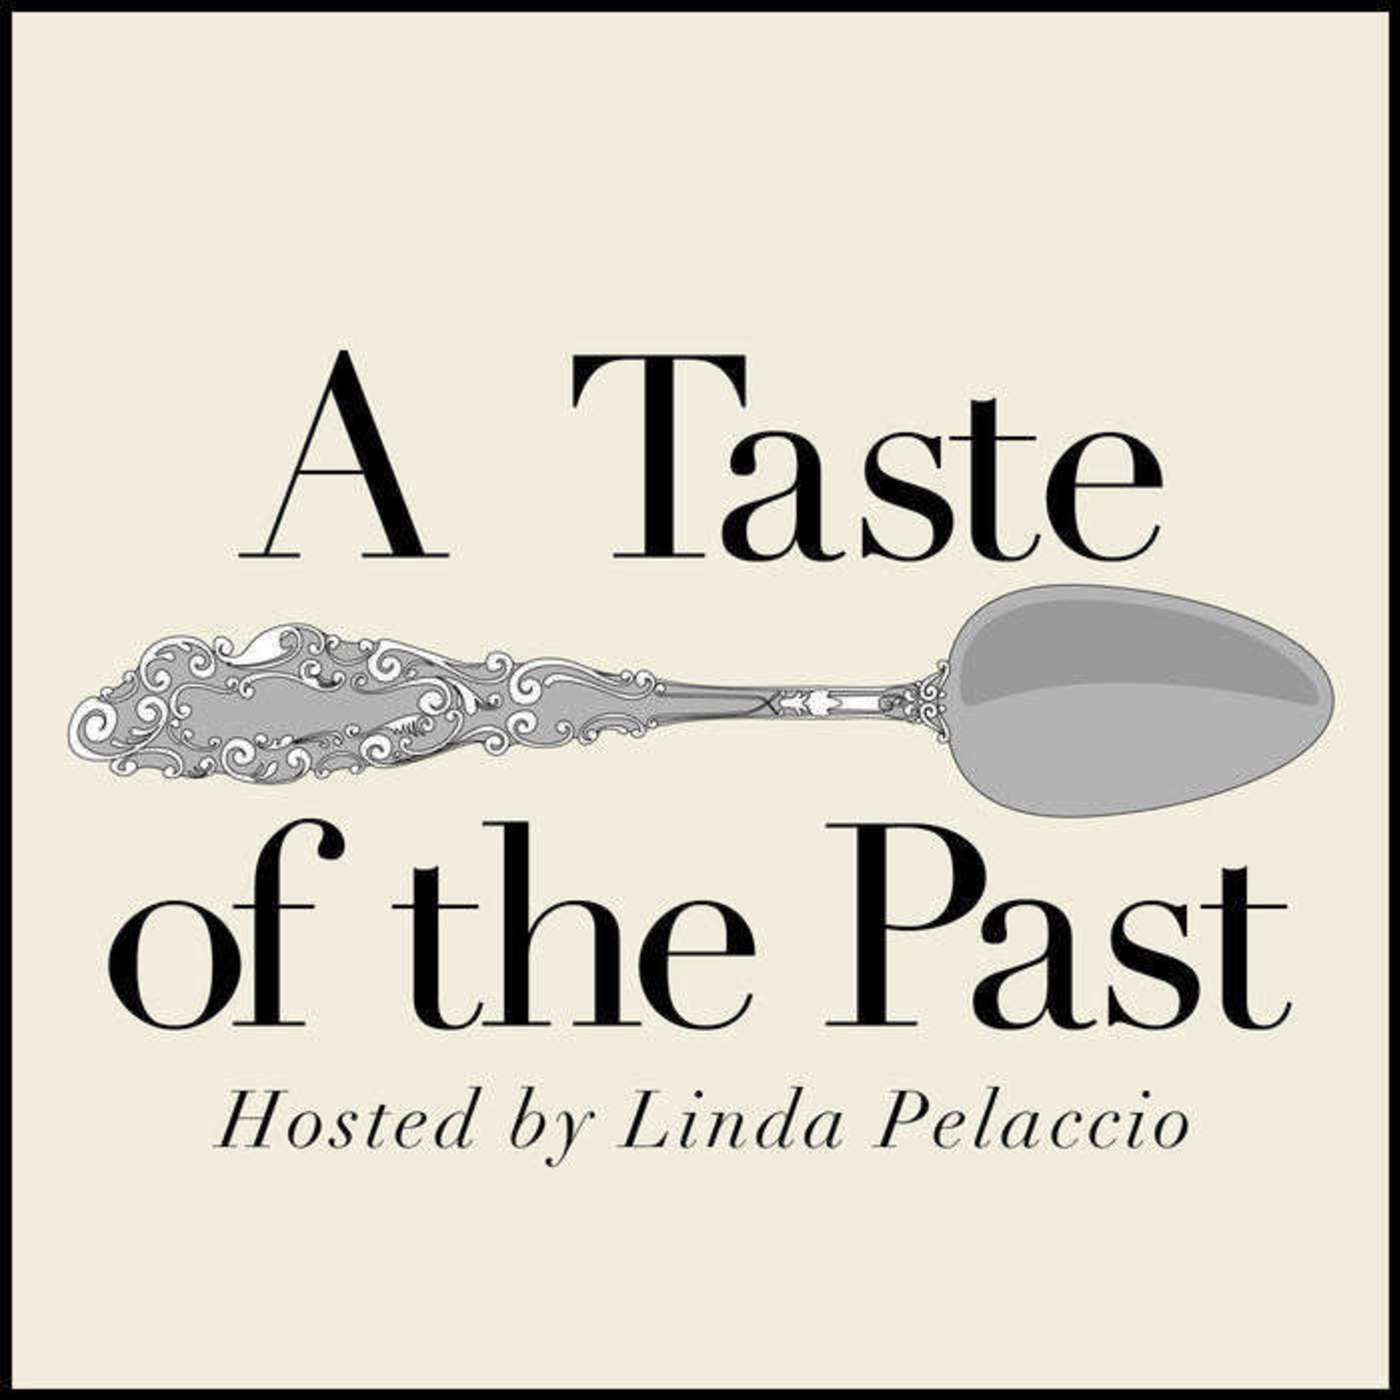 Episode 126: Found Food: Lewis & Clark with Mary Gunderson